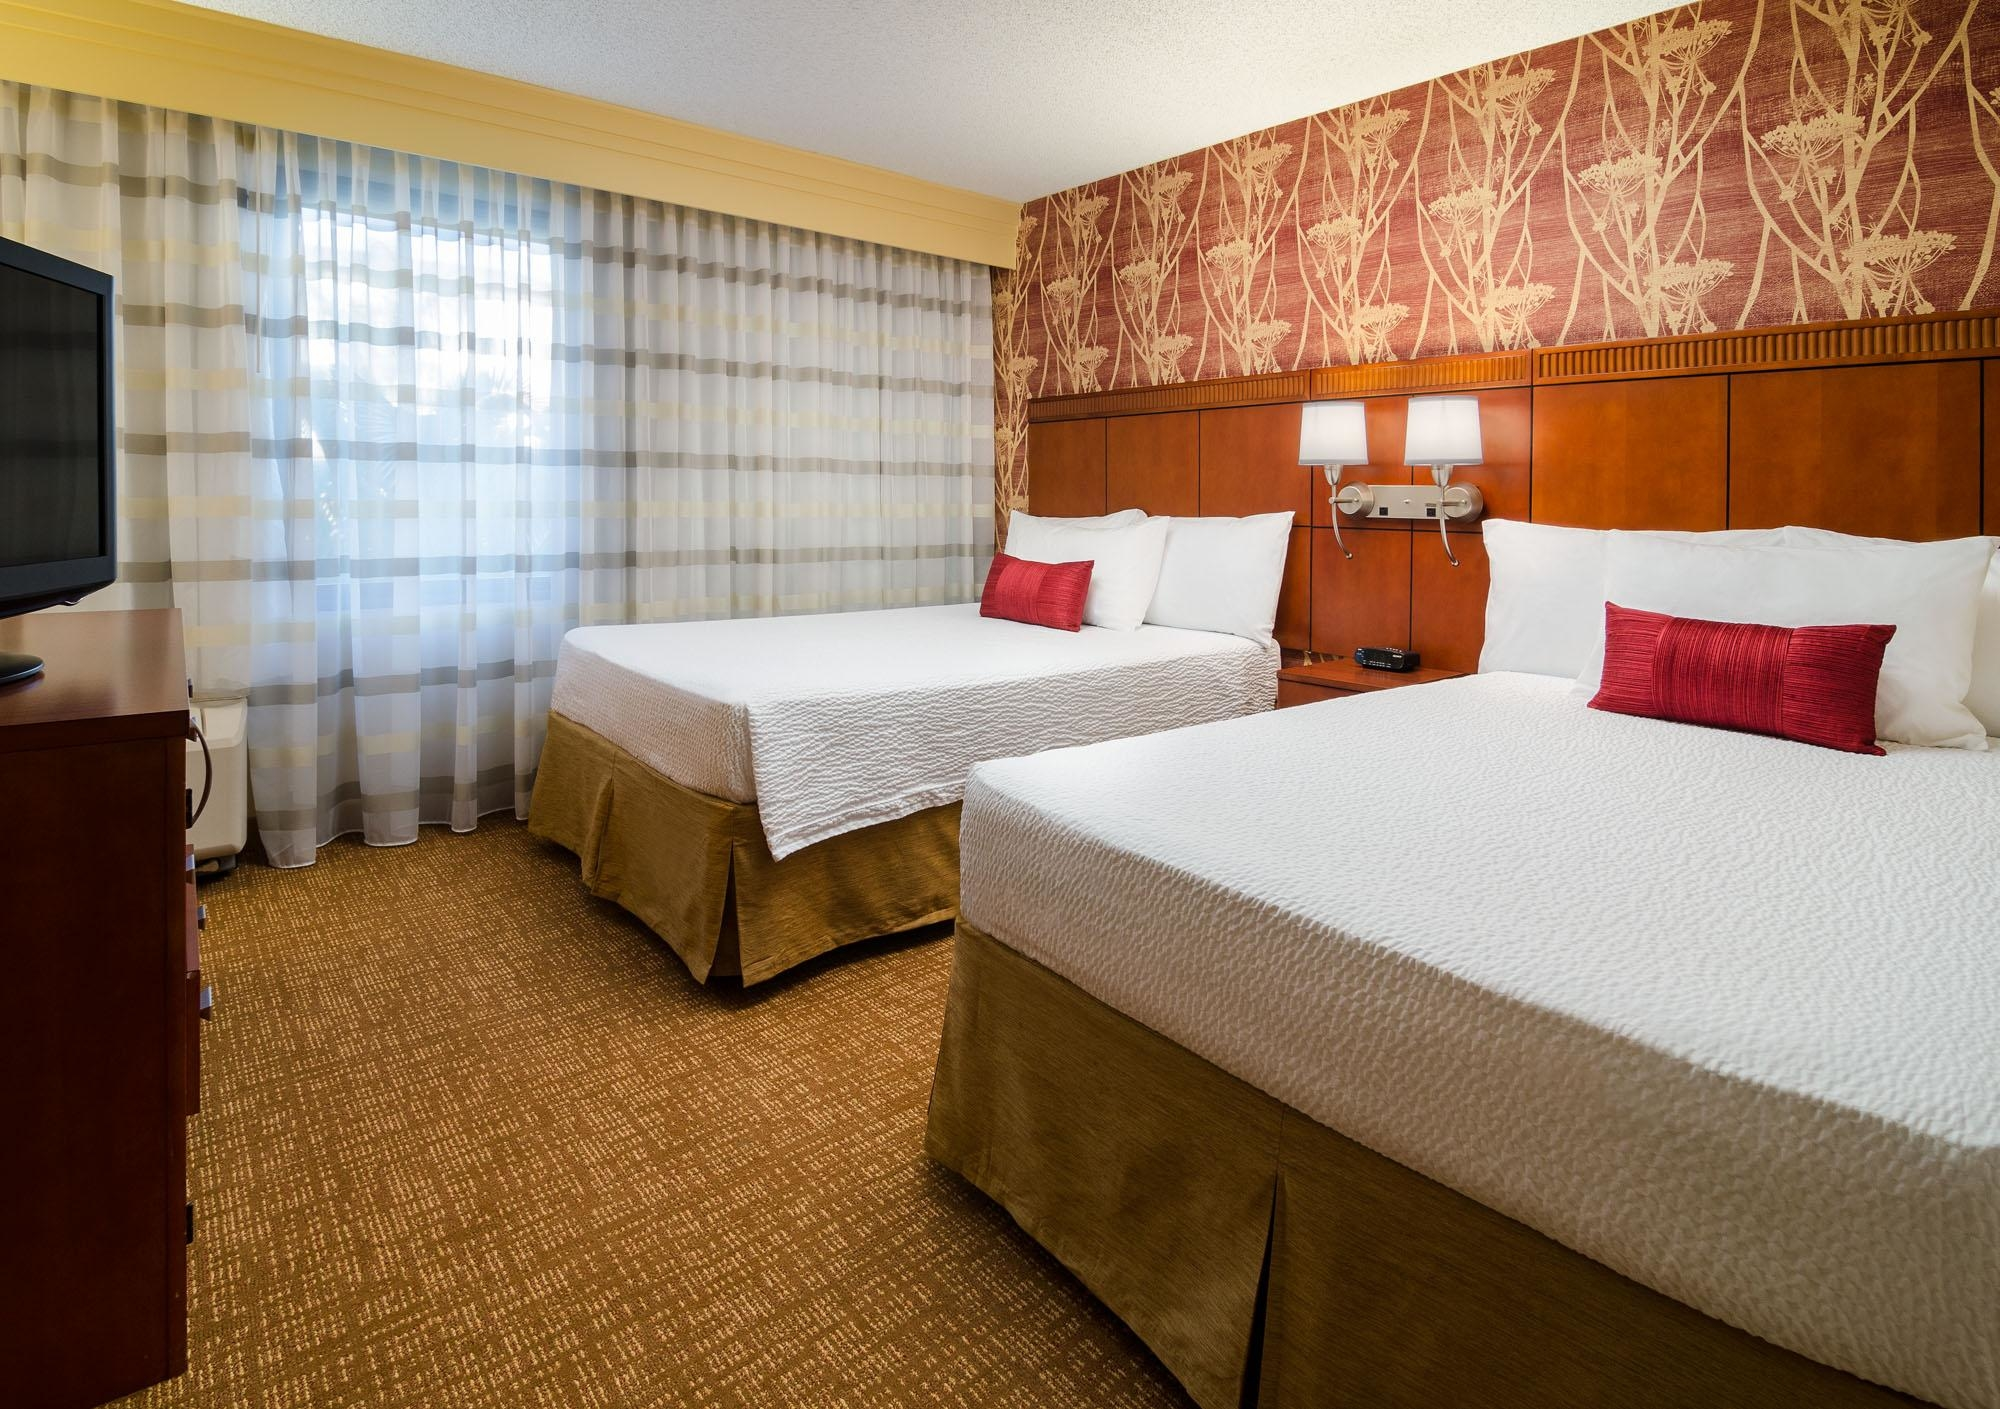 Courtyard by Marriott Fresno image 9